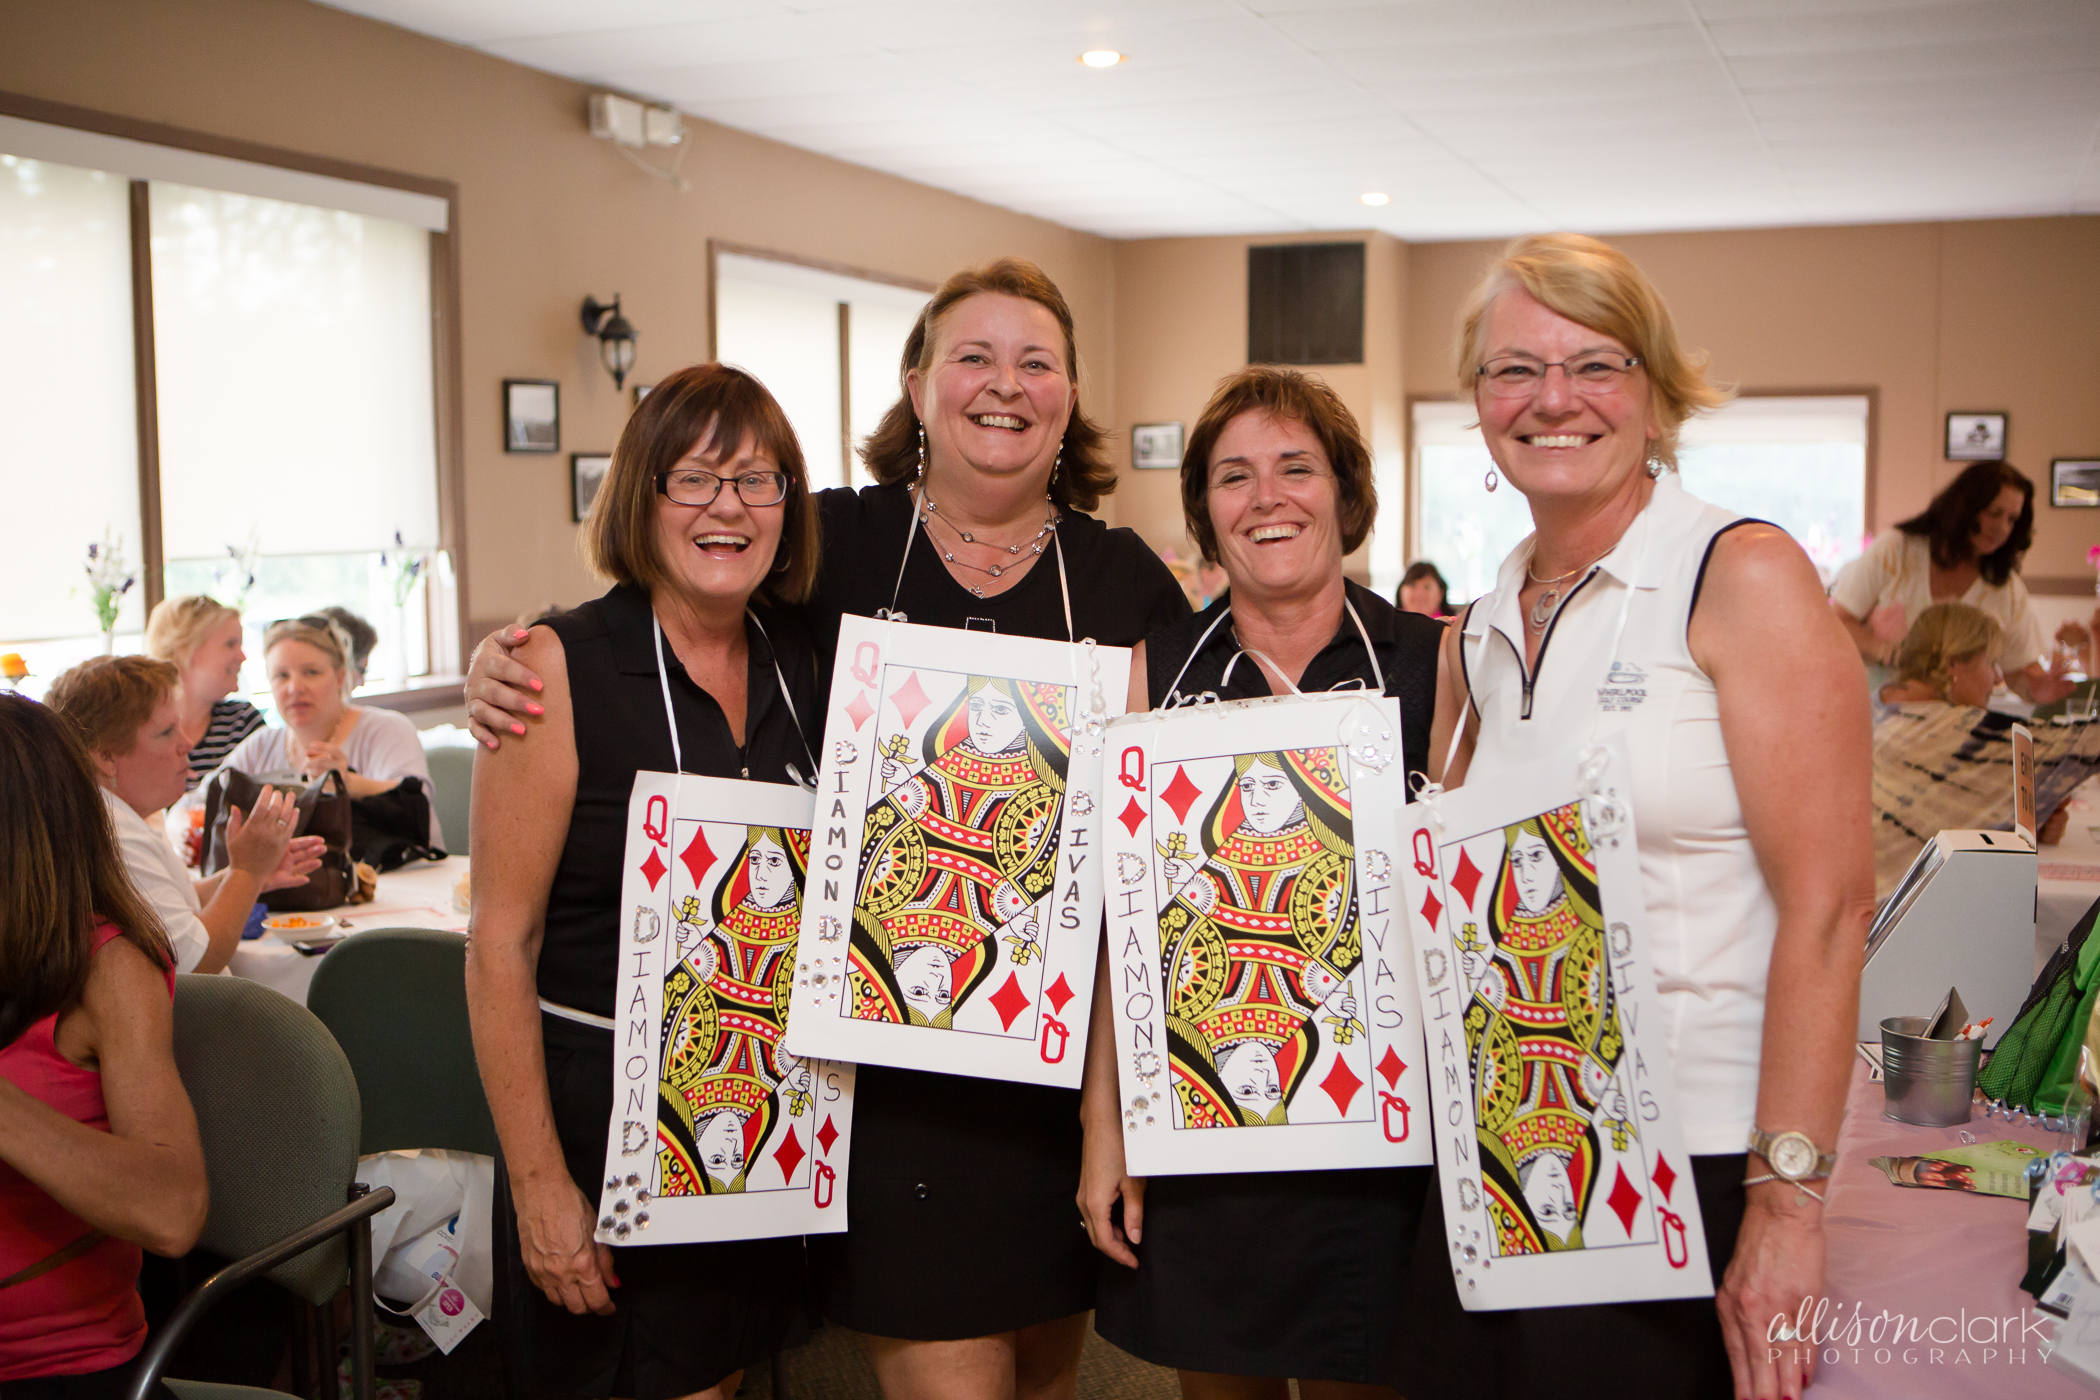 2015 Cornerstone OPEN -Allison Clark Photography-224